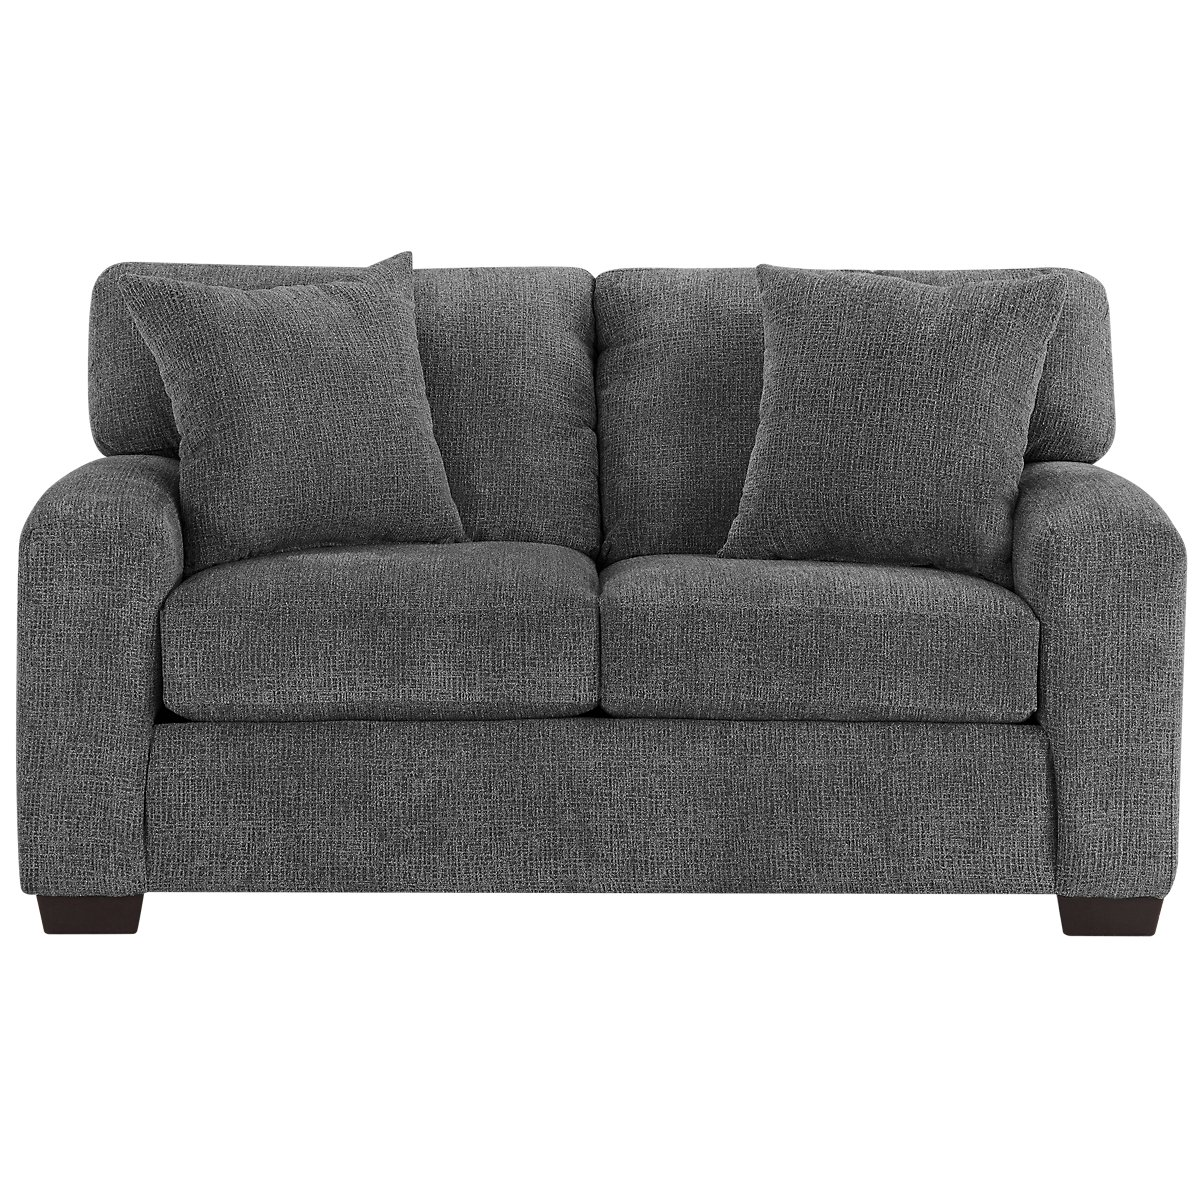 Microfiber Living Room Chairs City Furniture Adam Dark Gray Microfiber Living Room